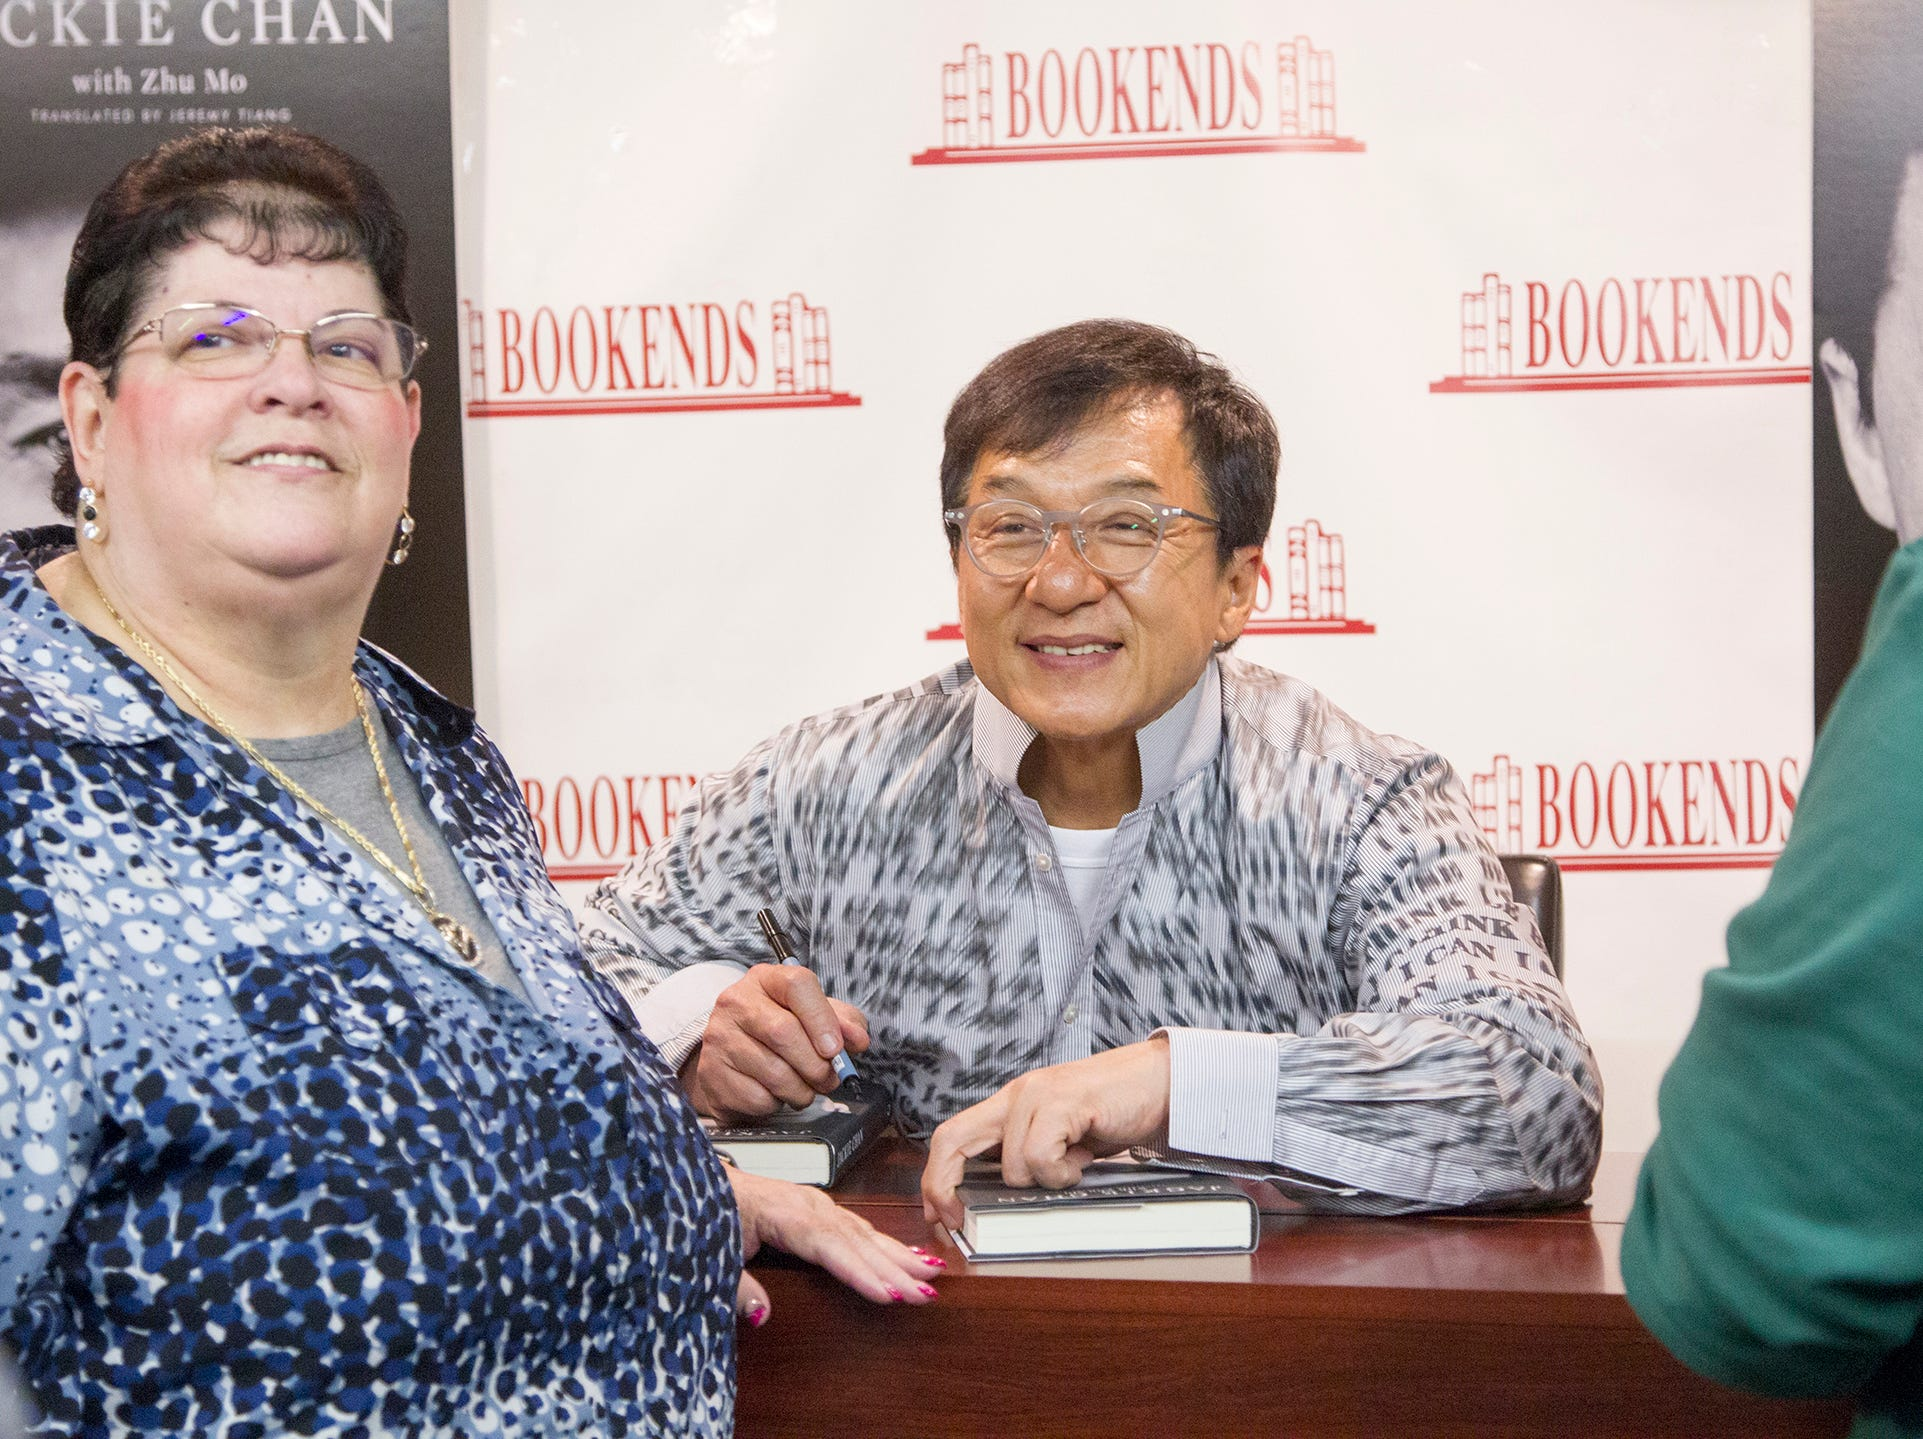 """Jackie Chan greets fans at Bookends in Ridgewood while signing his new book, """"Never Grow Up."""" 01/21/2019"""